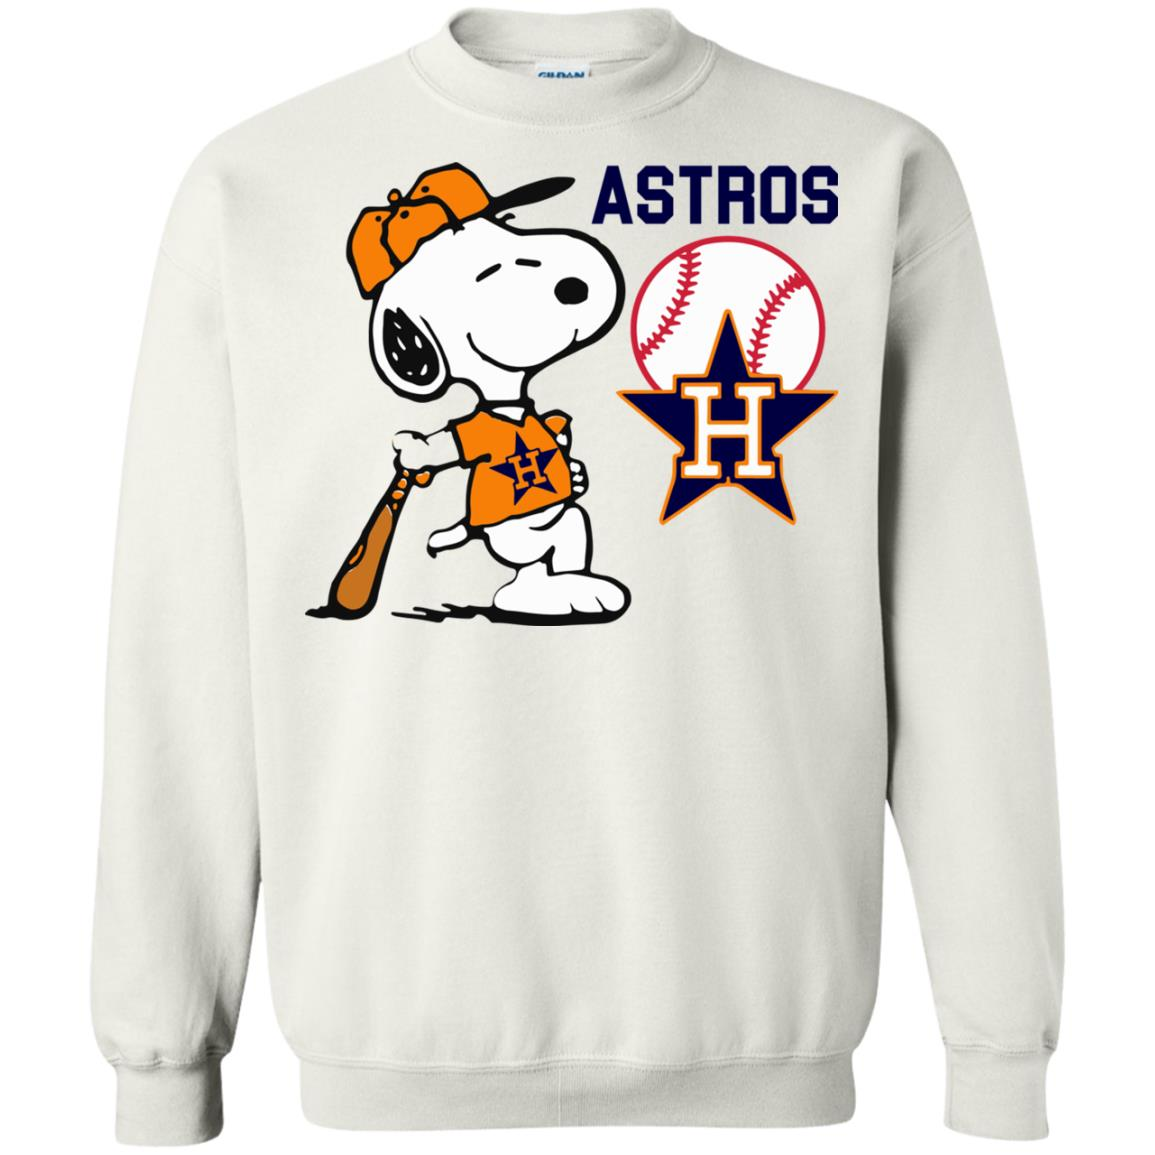 image 971 - Snoopy Houston Astros Shirt, Sweater, Hoodie